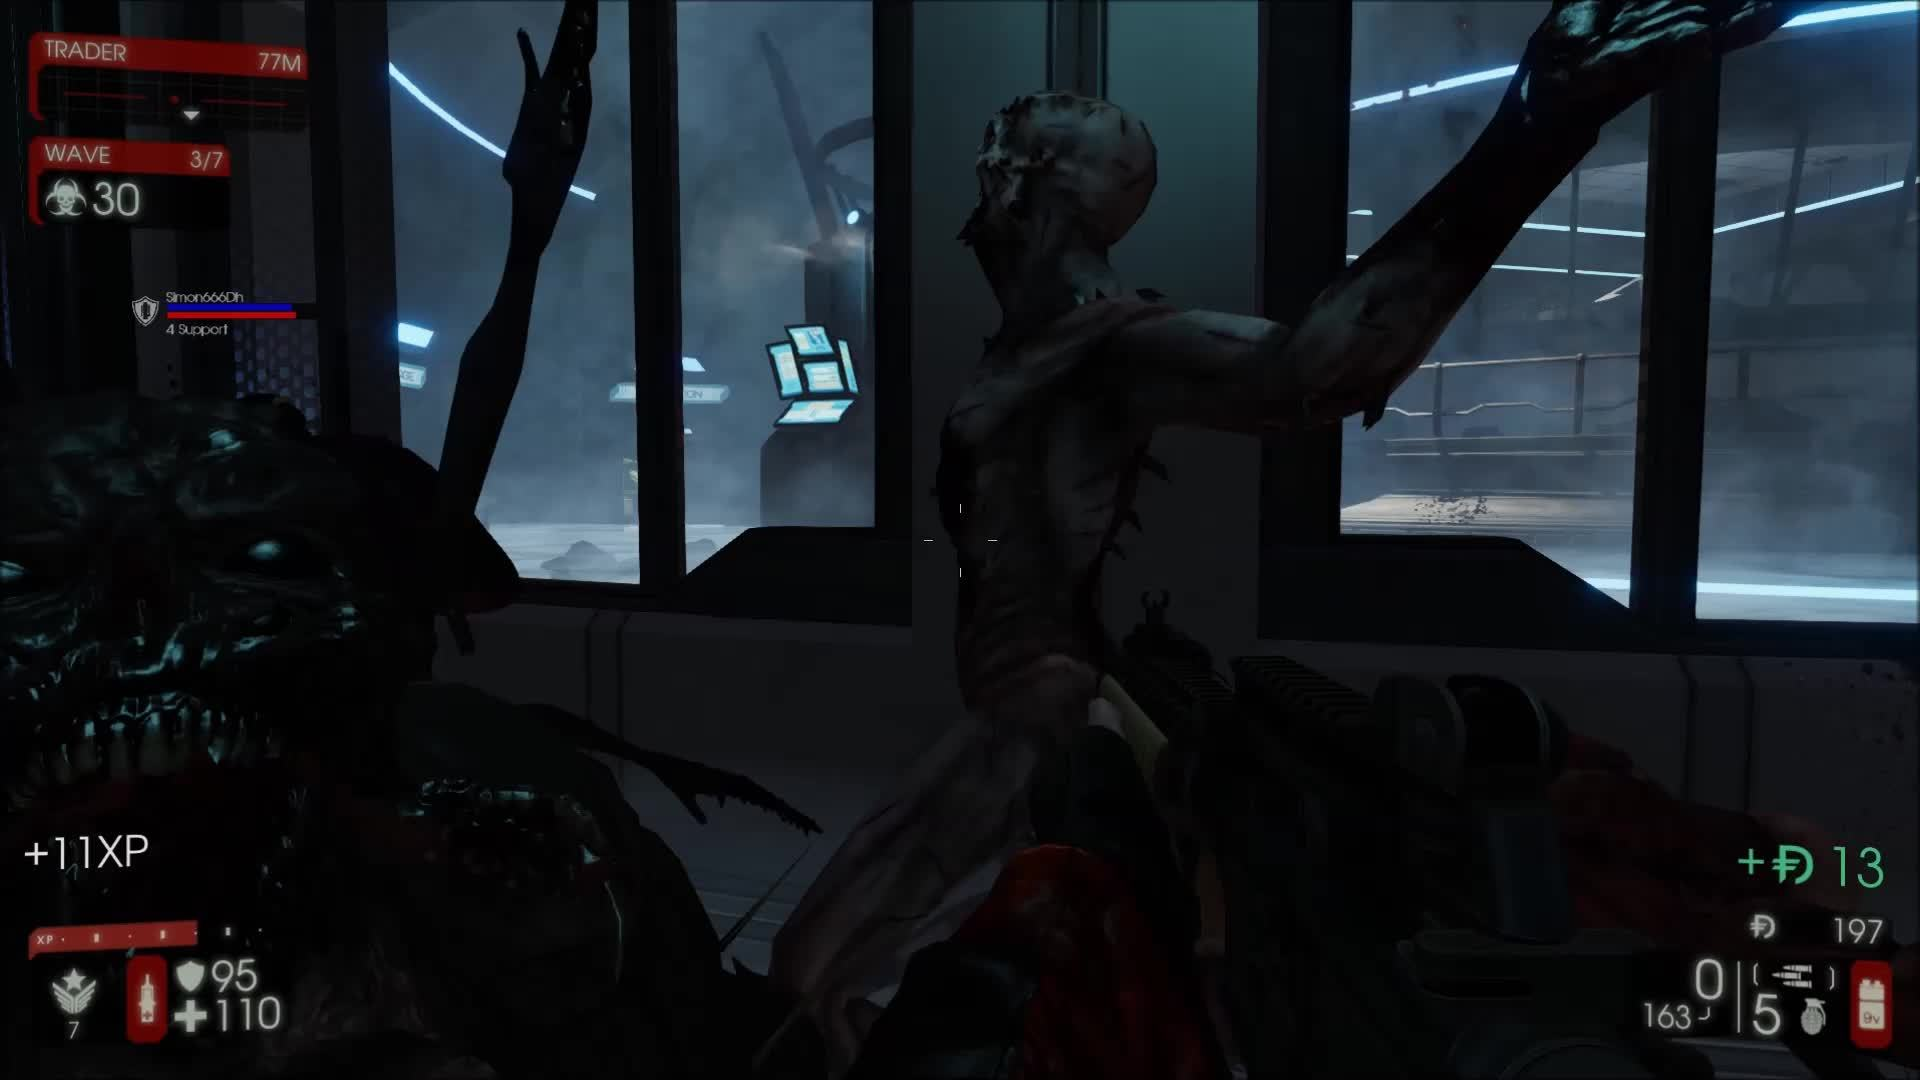 killingfloor, Sometimes, Zed Time just happens at the perfect moment (reddit) GIFs